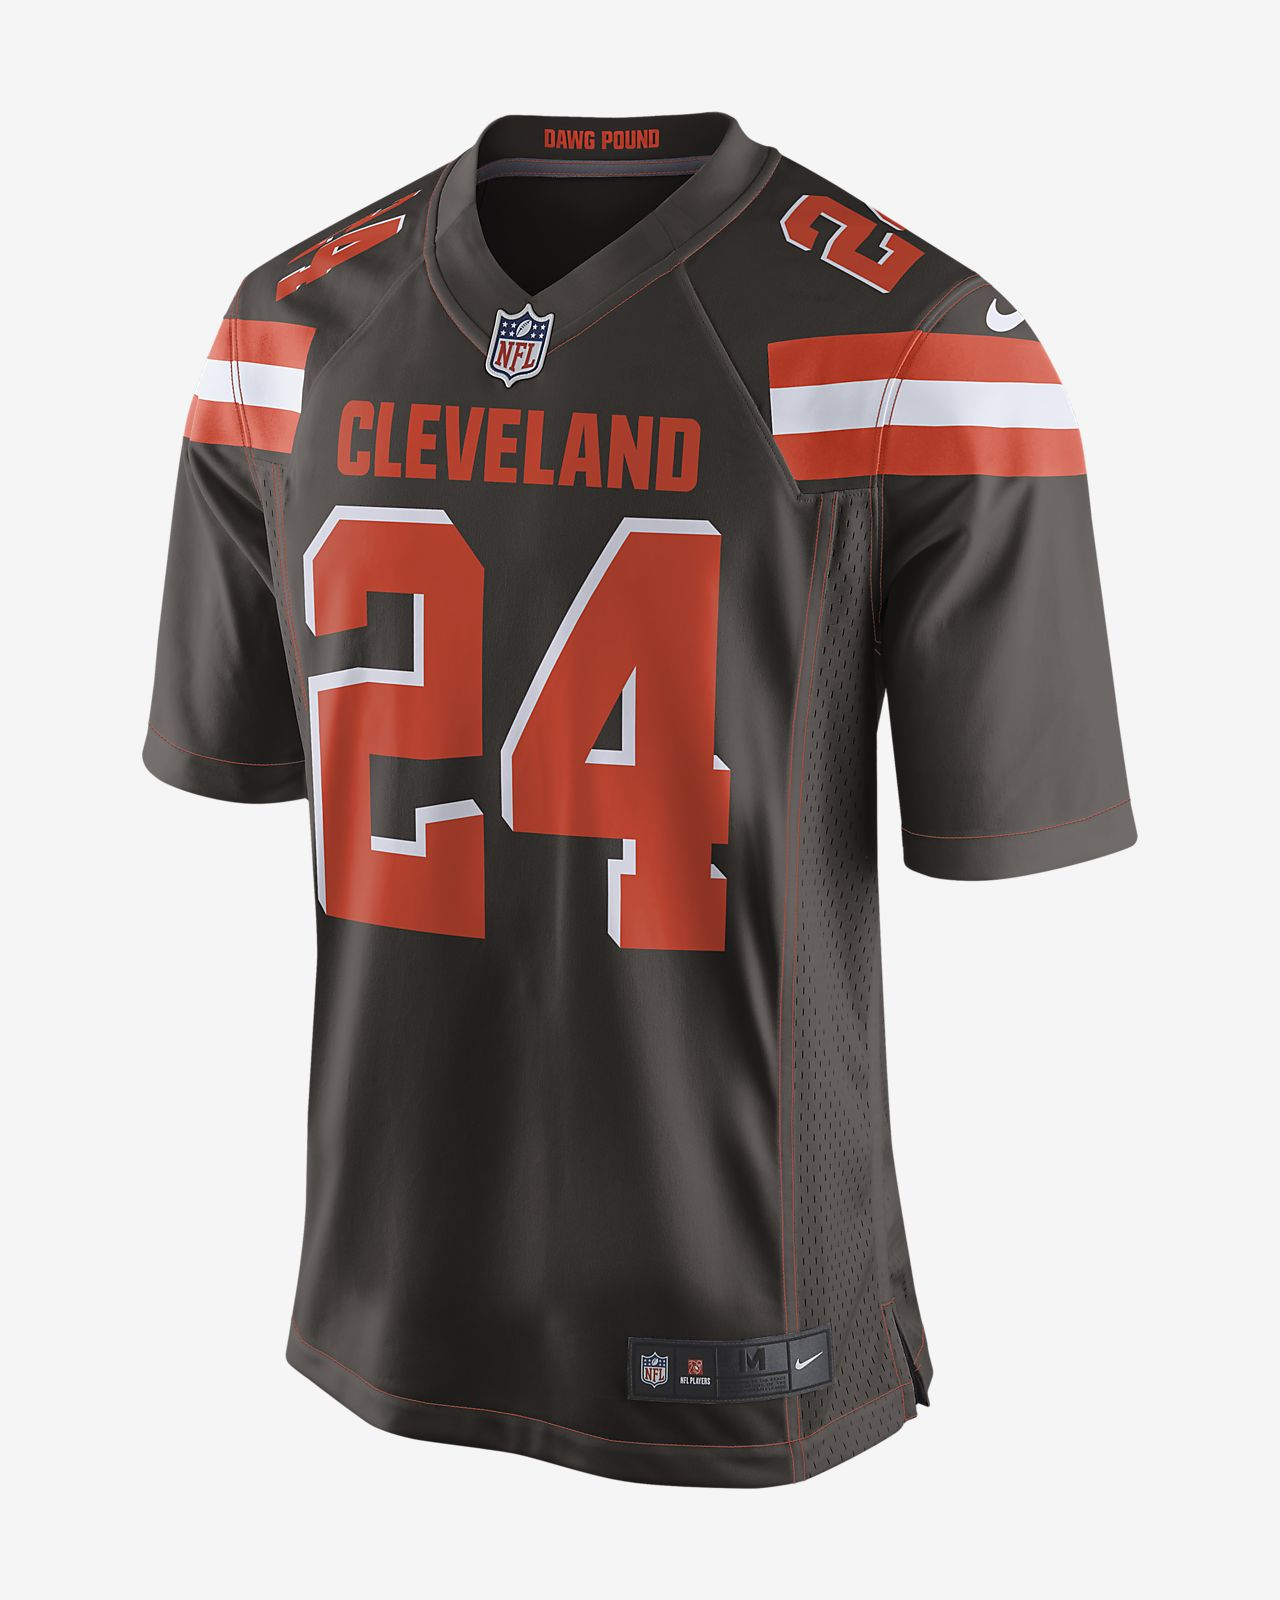 872ff6bcc0b NFL Cleveland Browns (Nick Chubb) Men's Game Football Jersey. Nike.com